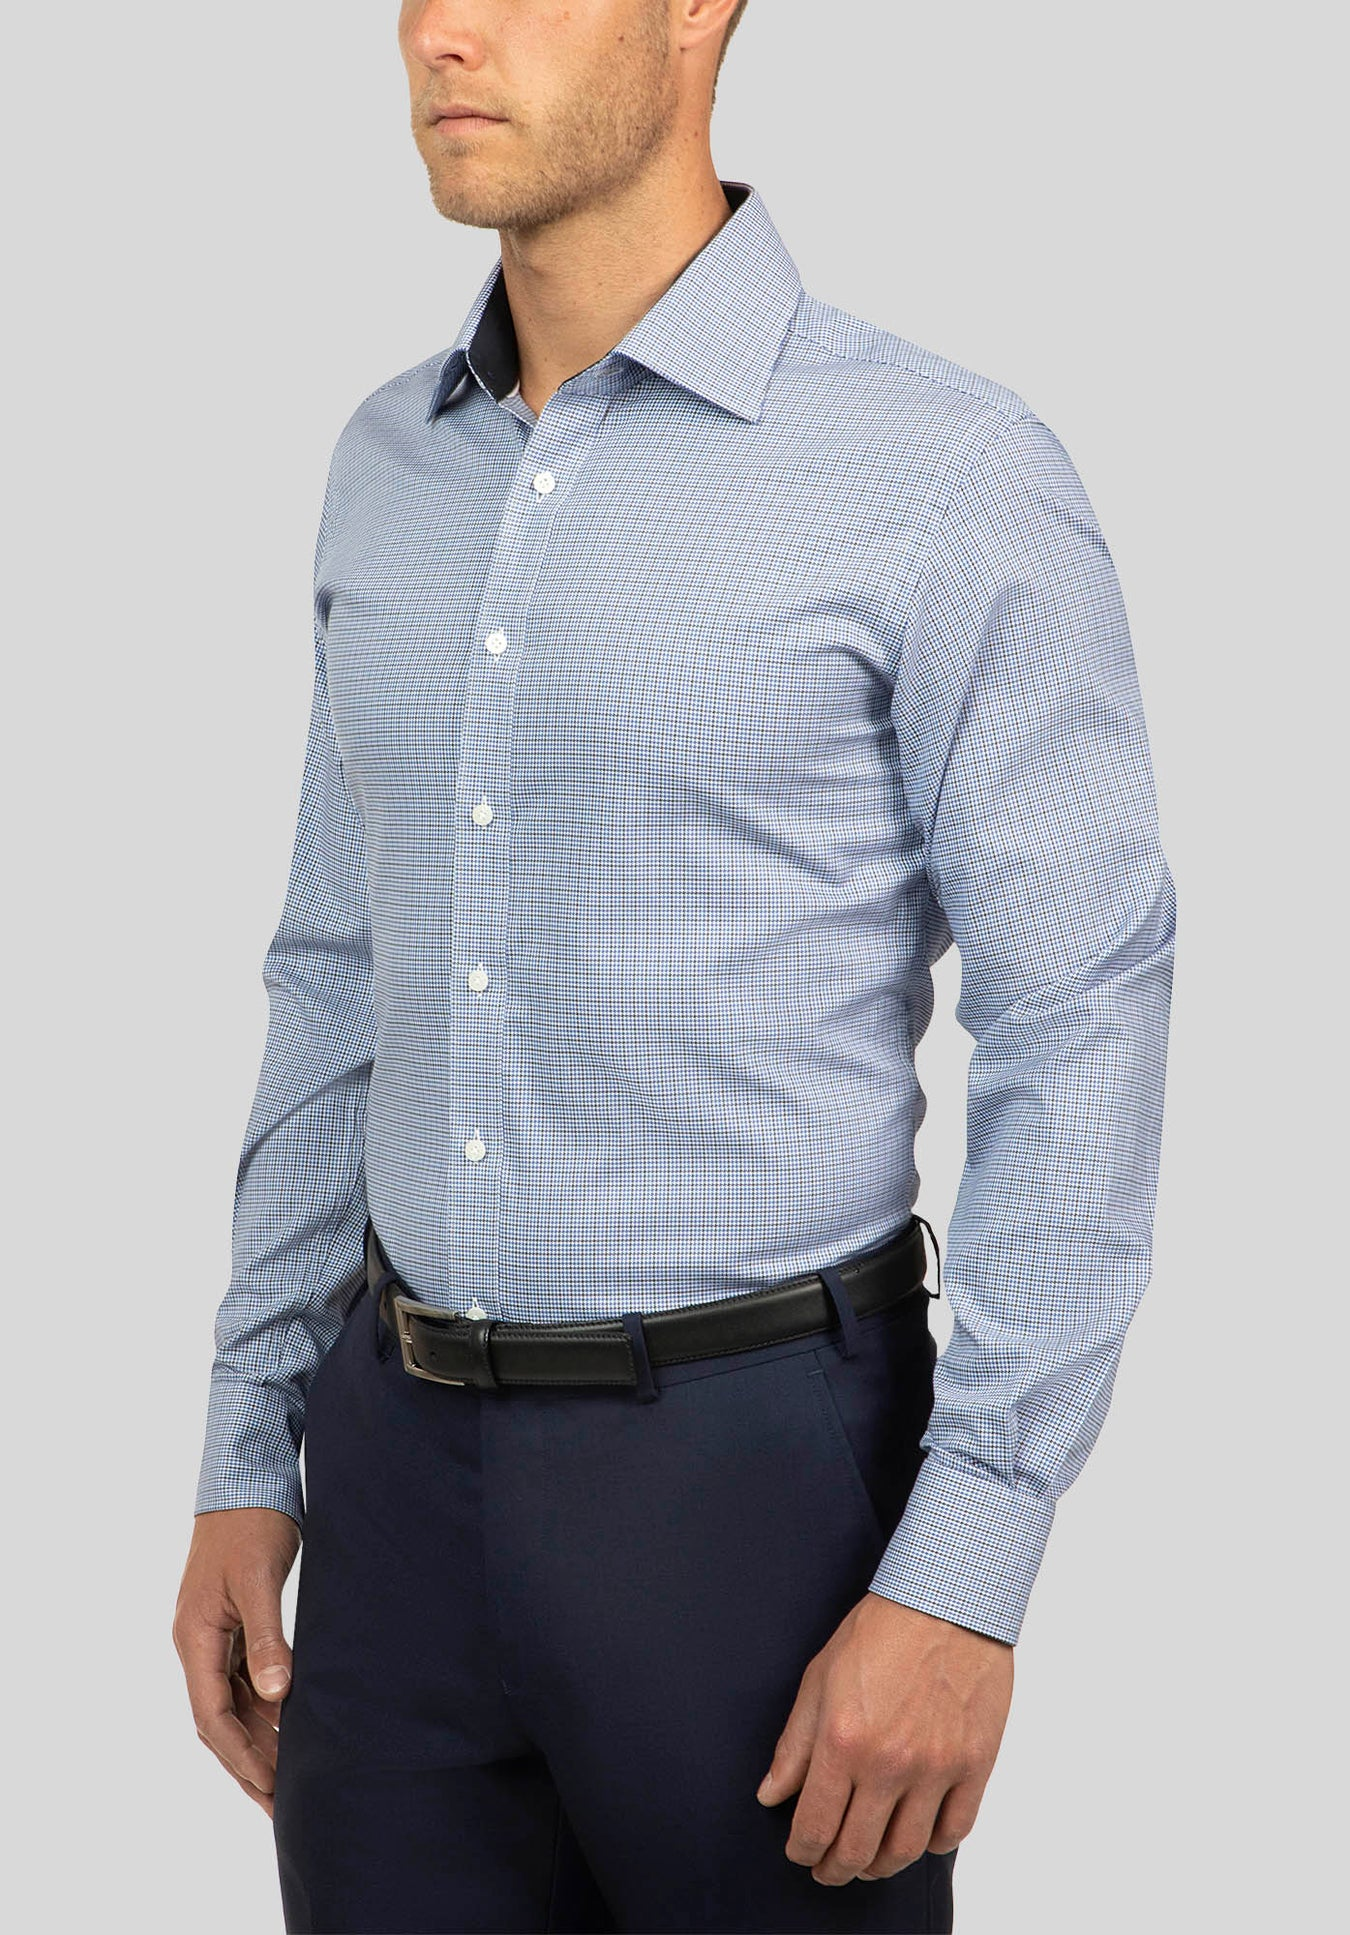 CARLTON SHIRT FCJ207 - Blue